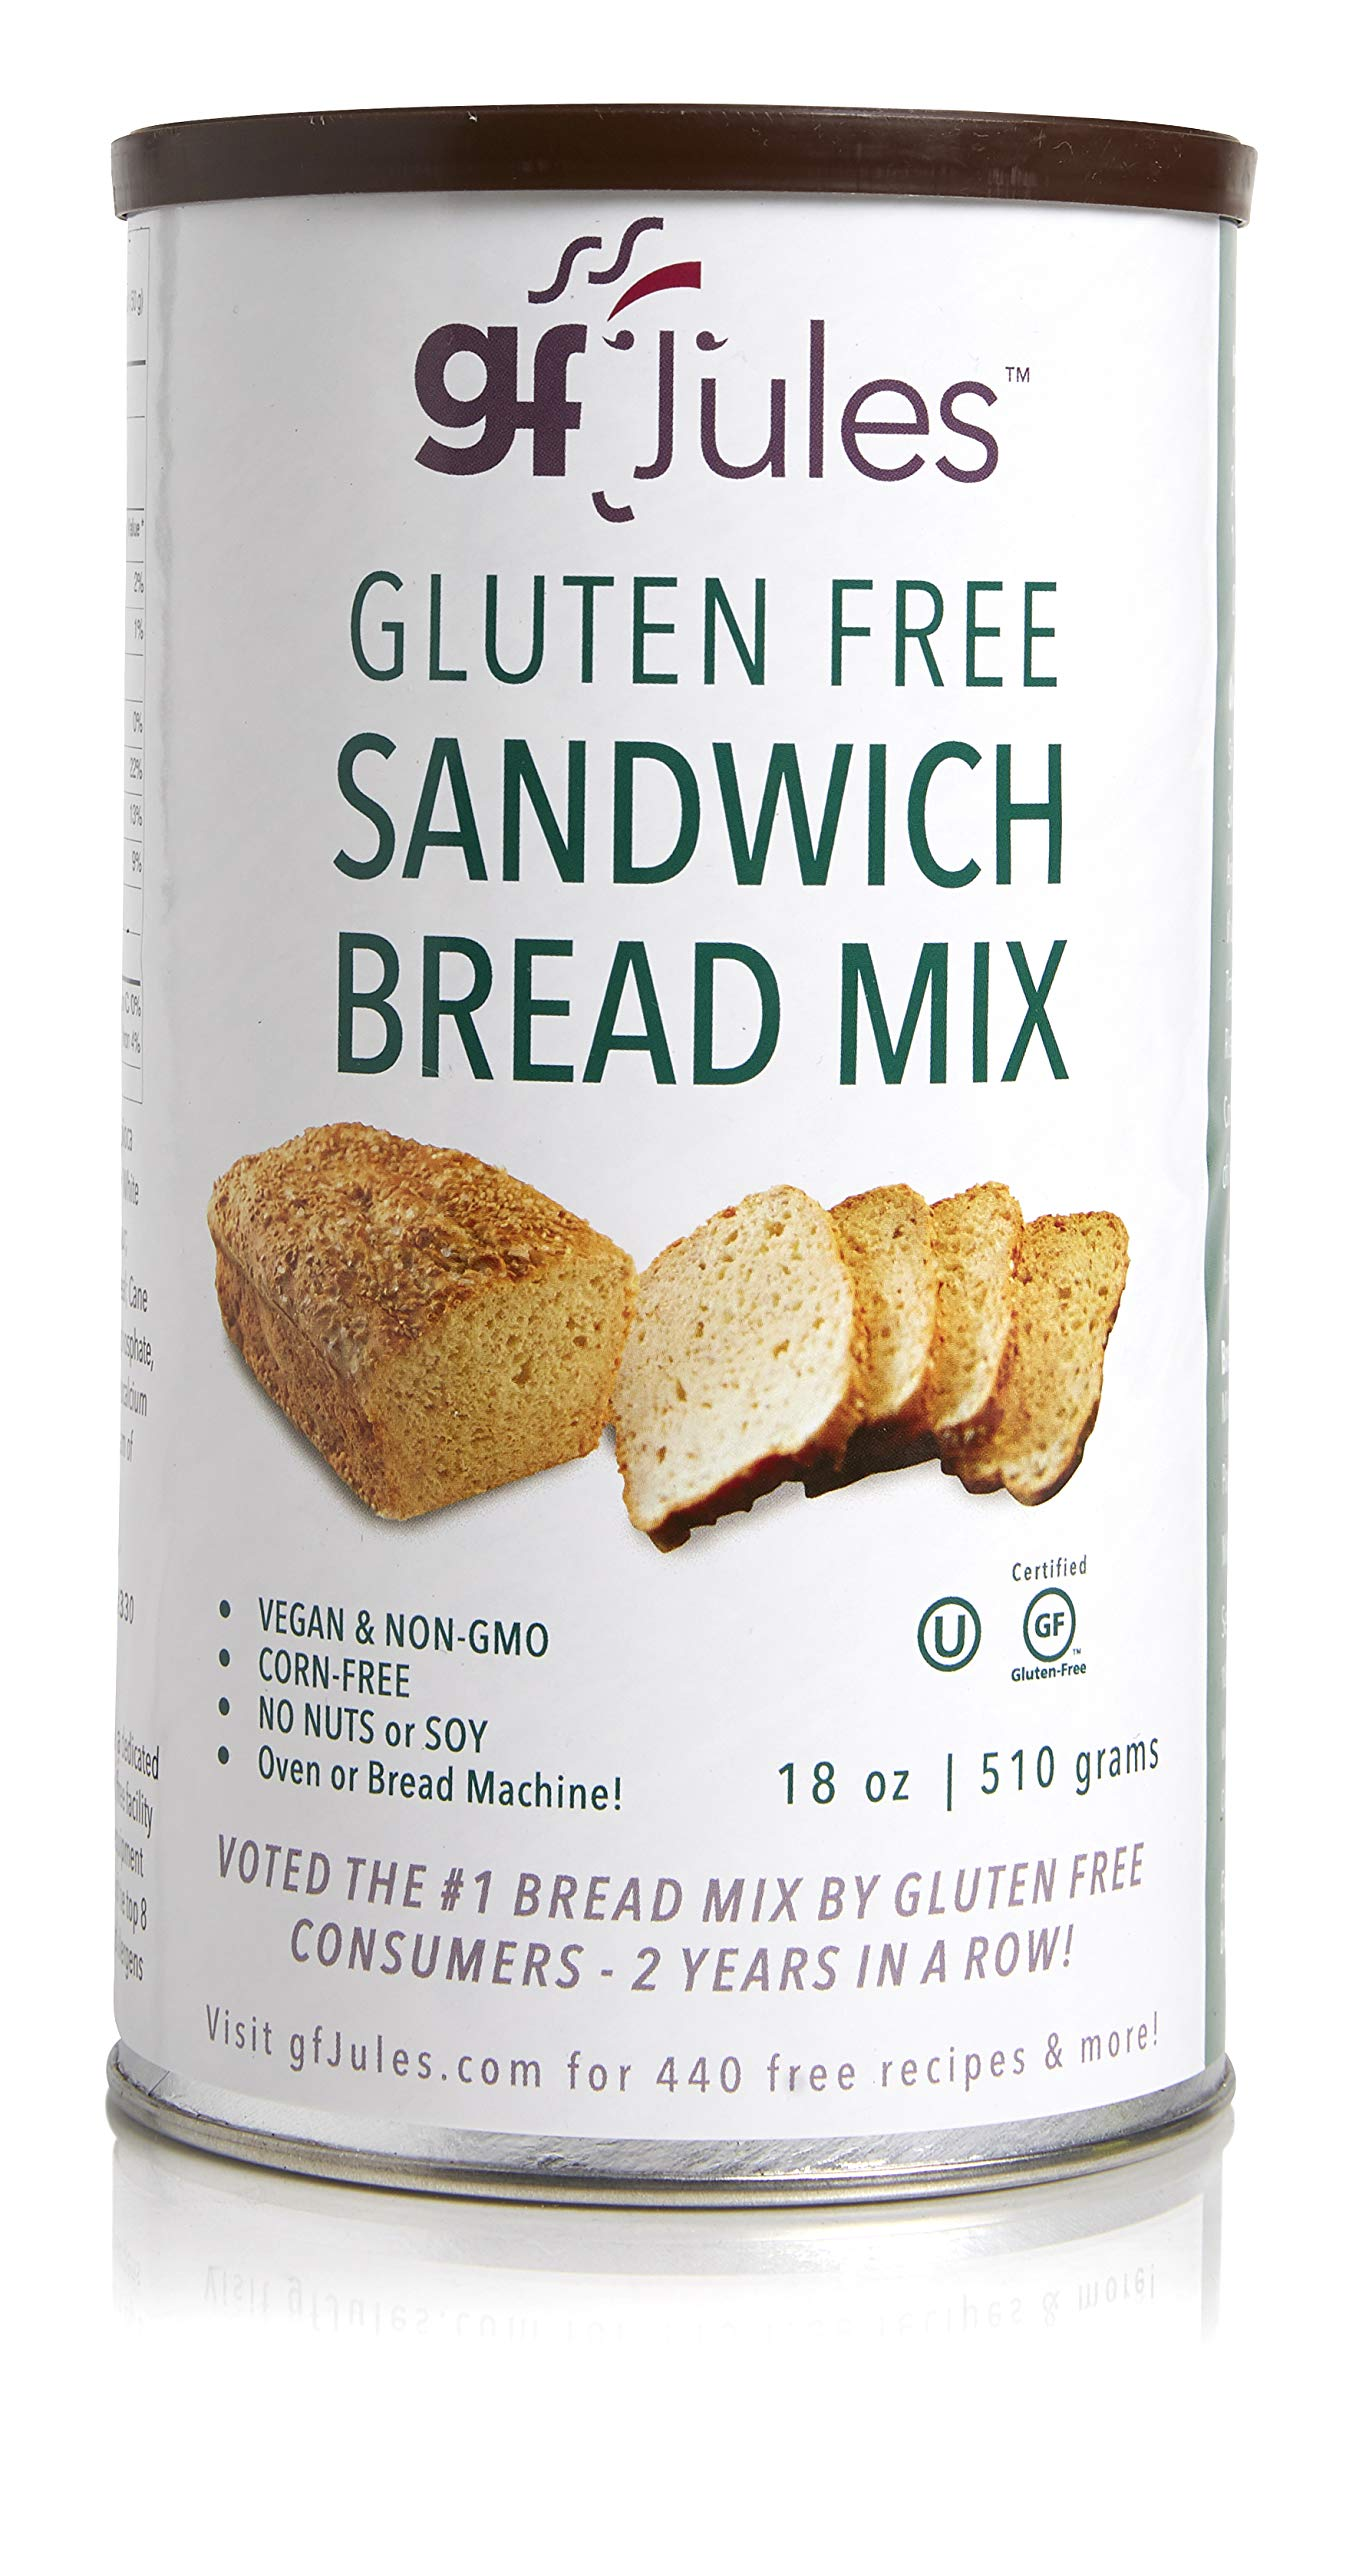 gfJules Gluten Free Sandwich Bread Mix- Voted #1 by GF Consumers 1.11 lbs, Pack of 1 by gfJules